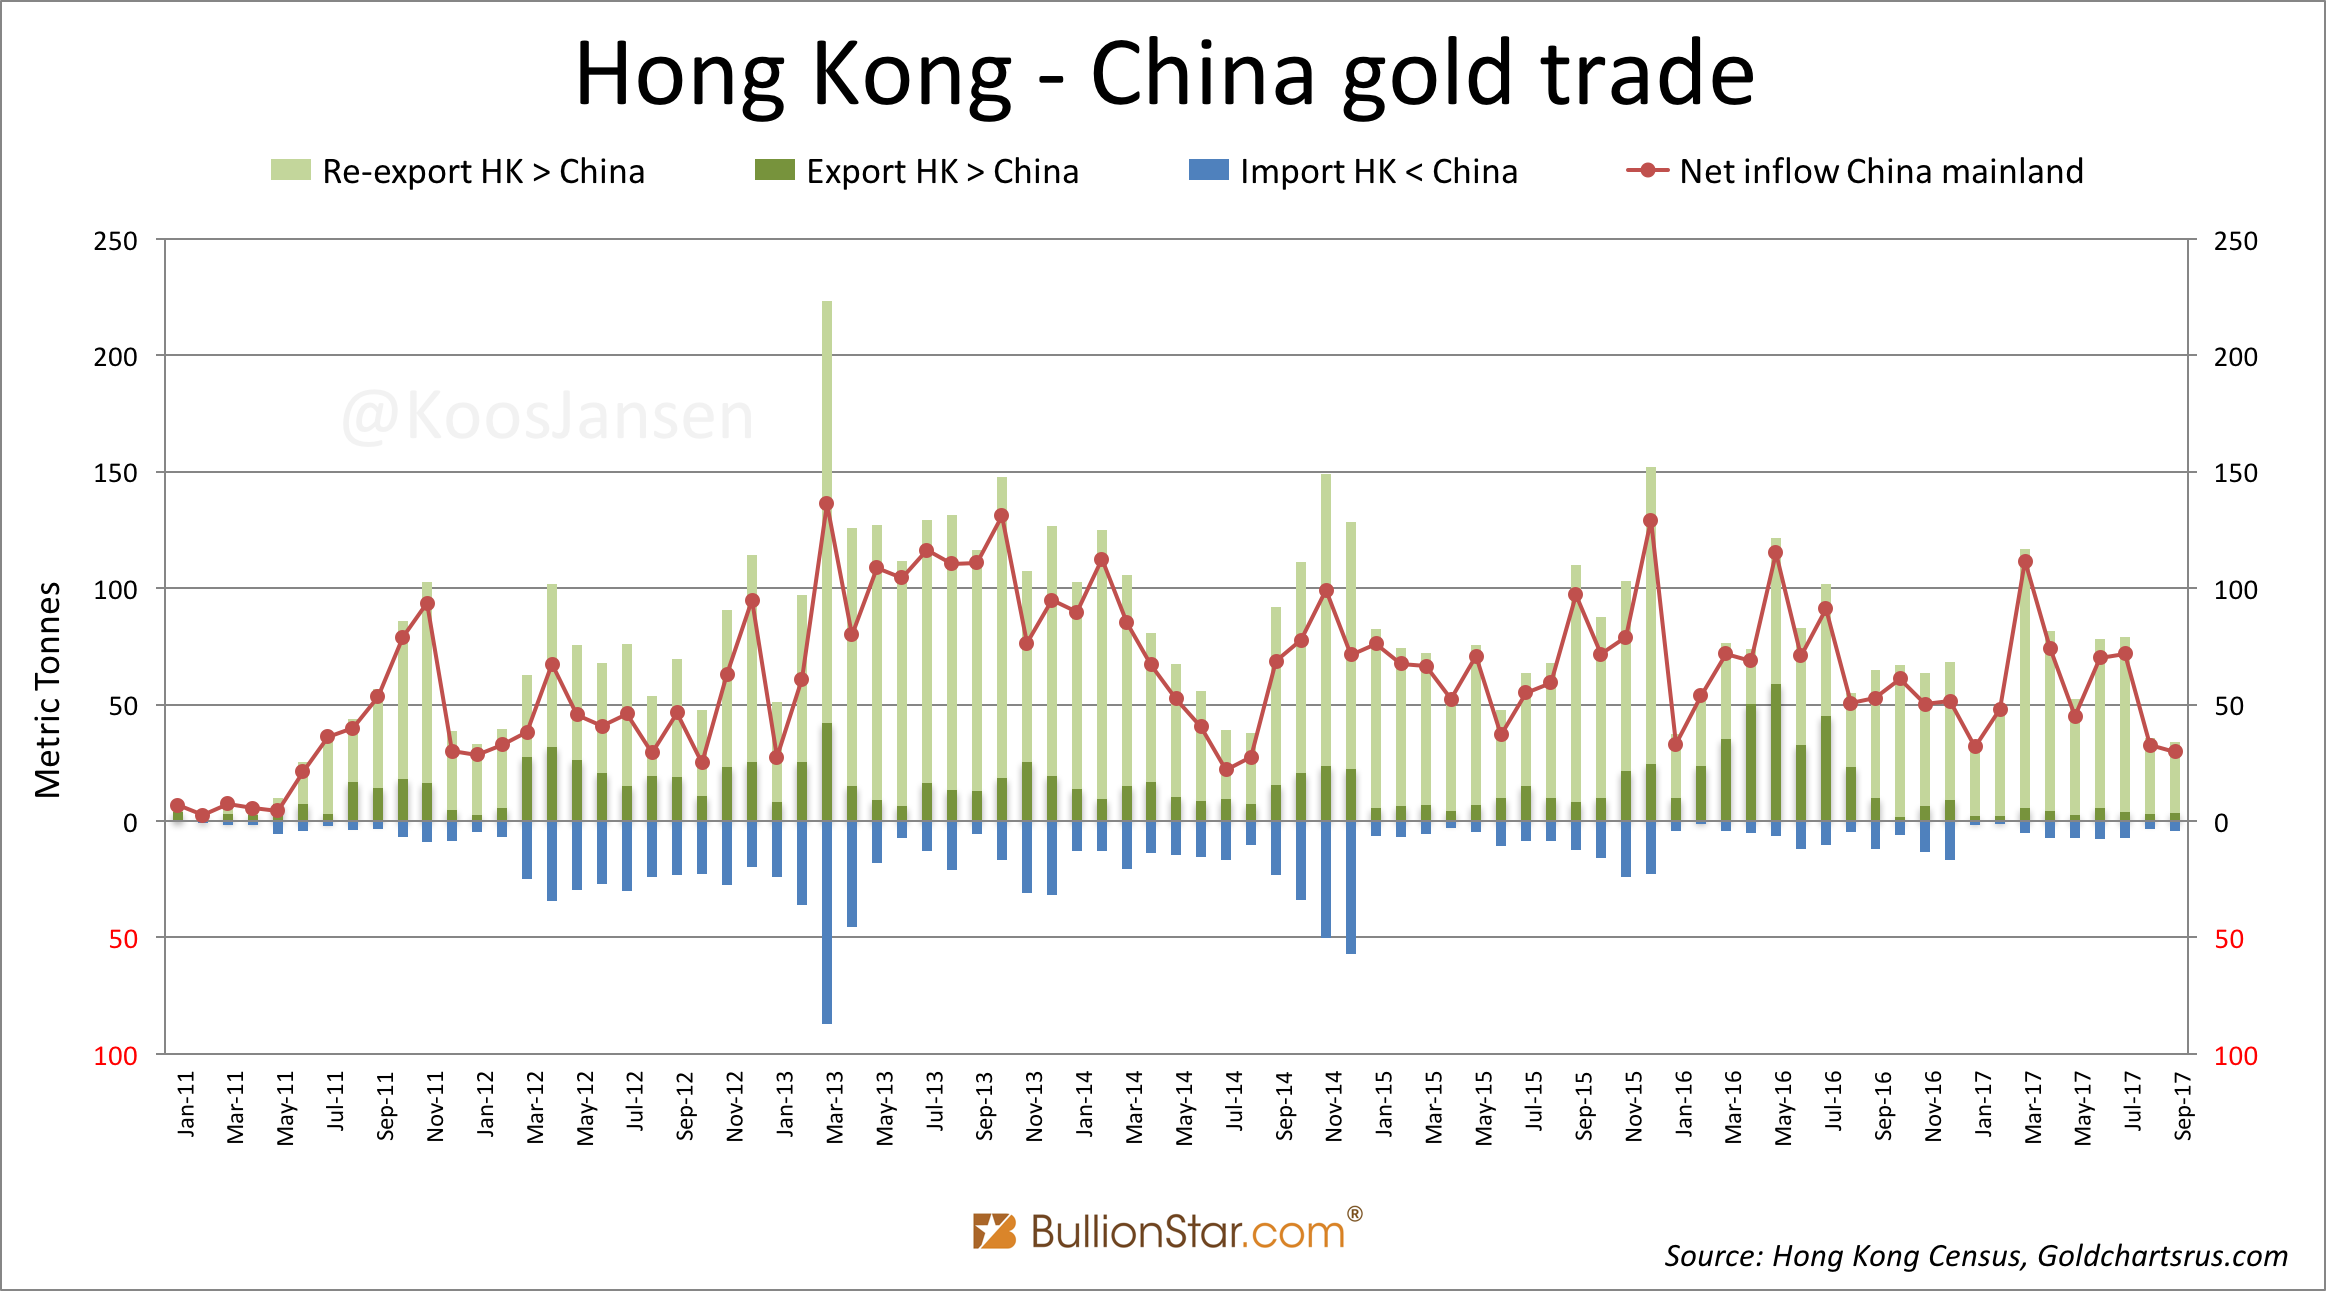 Hong Kong - China Gold Trade, Jan 2011 - Sep 2017